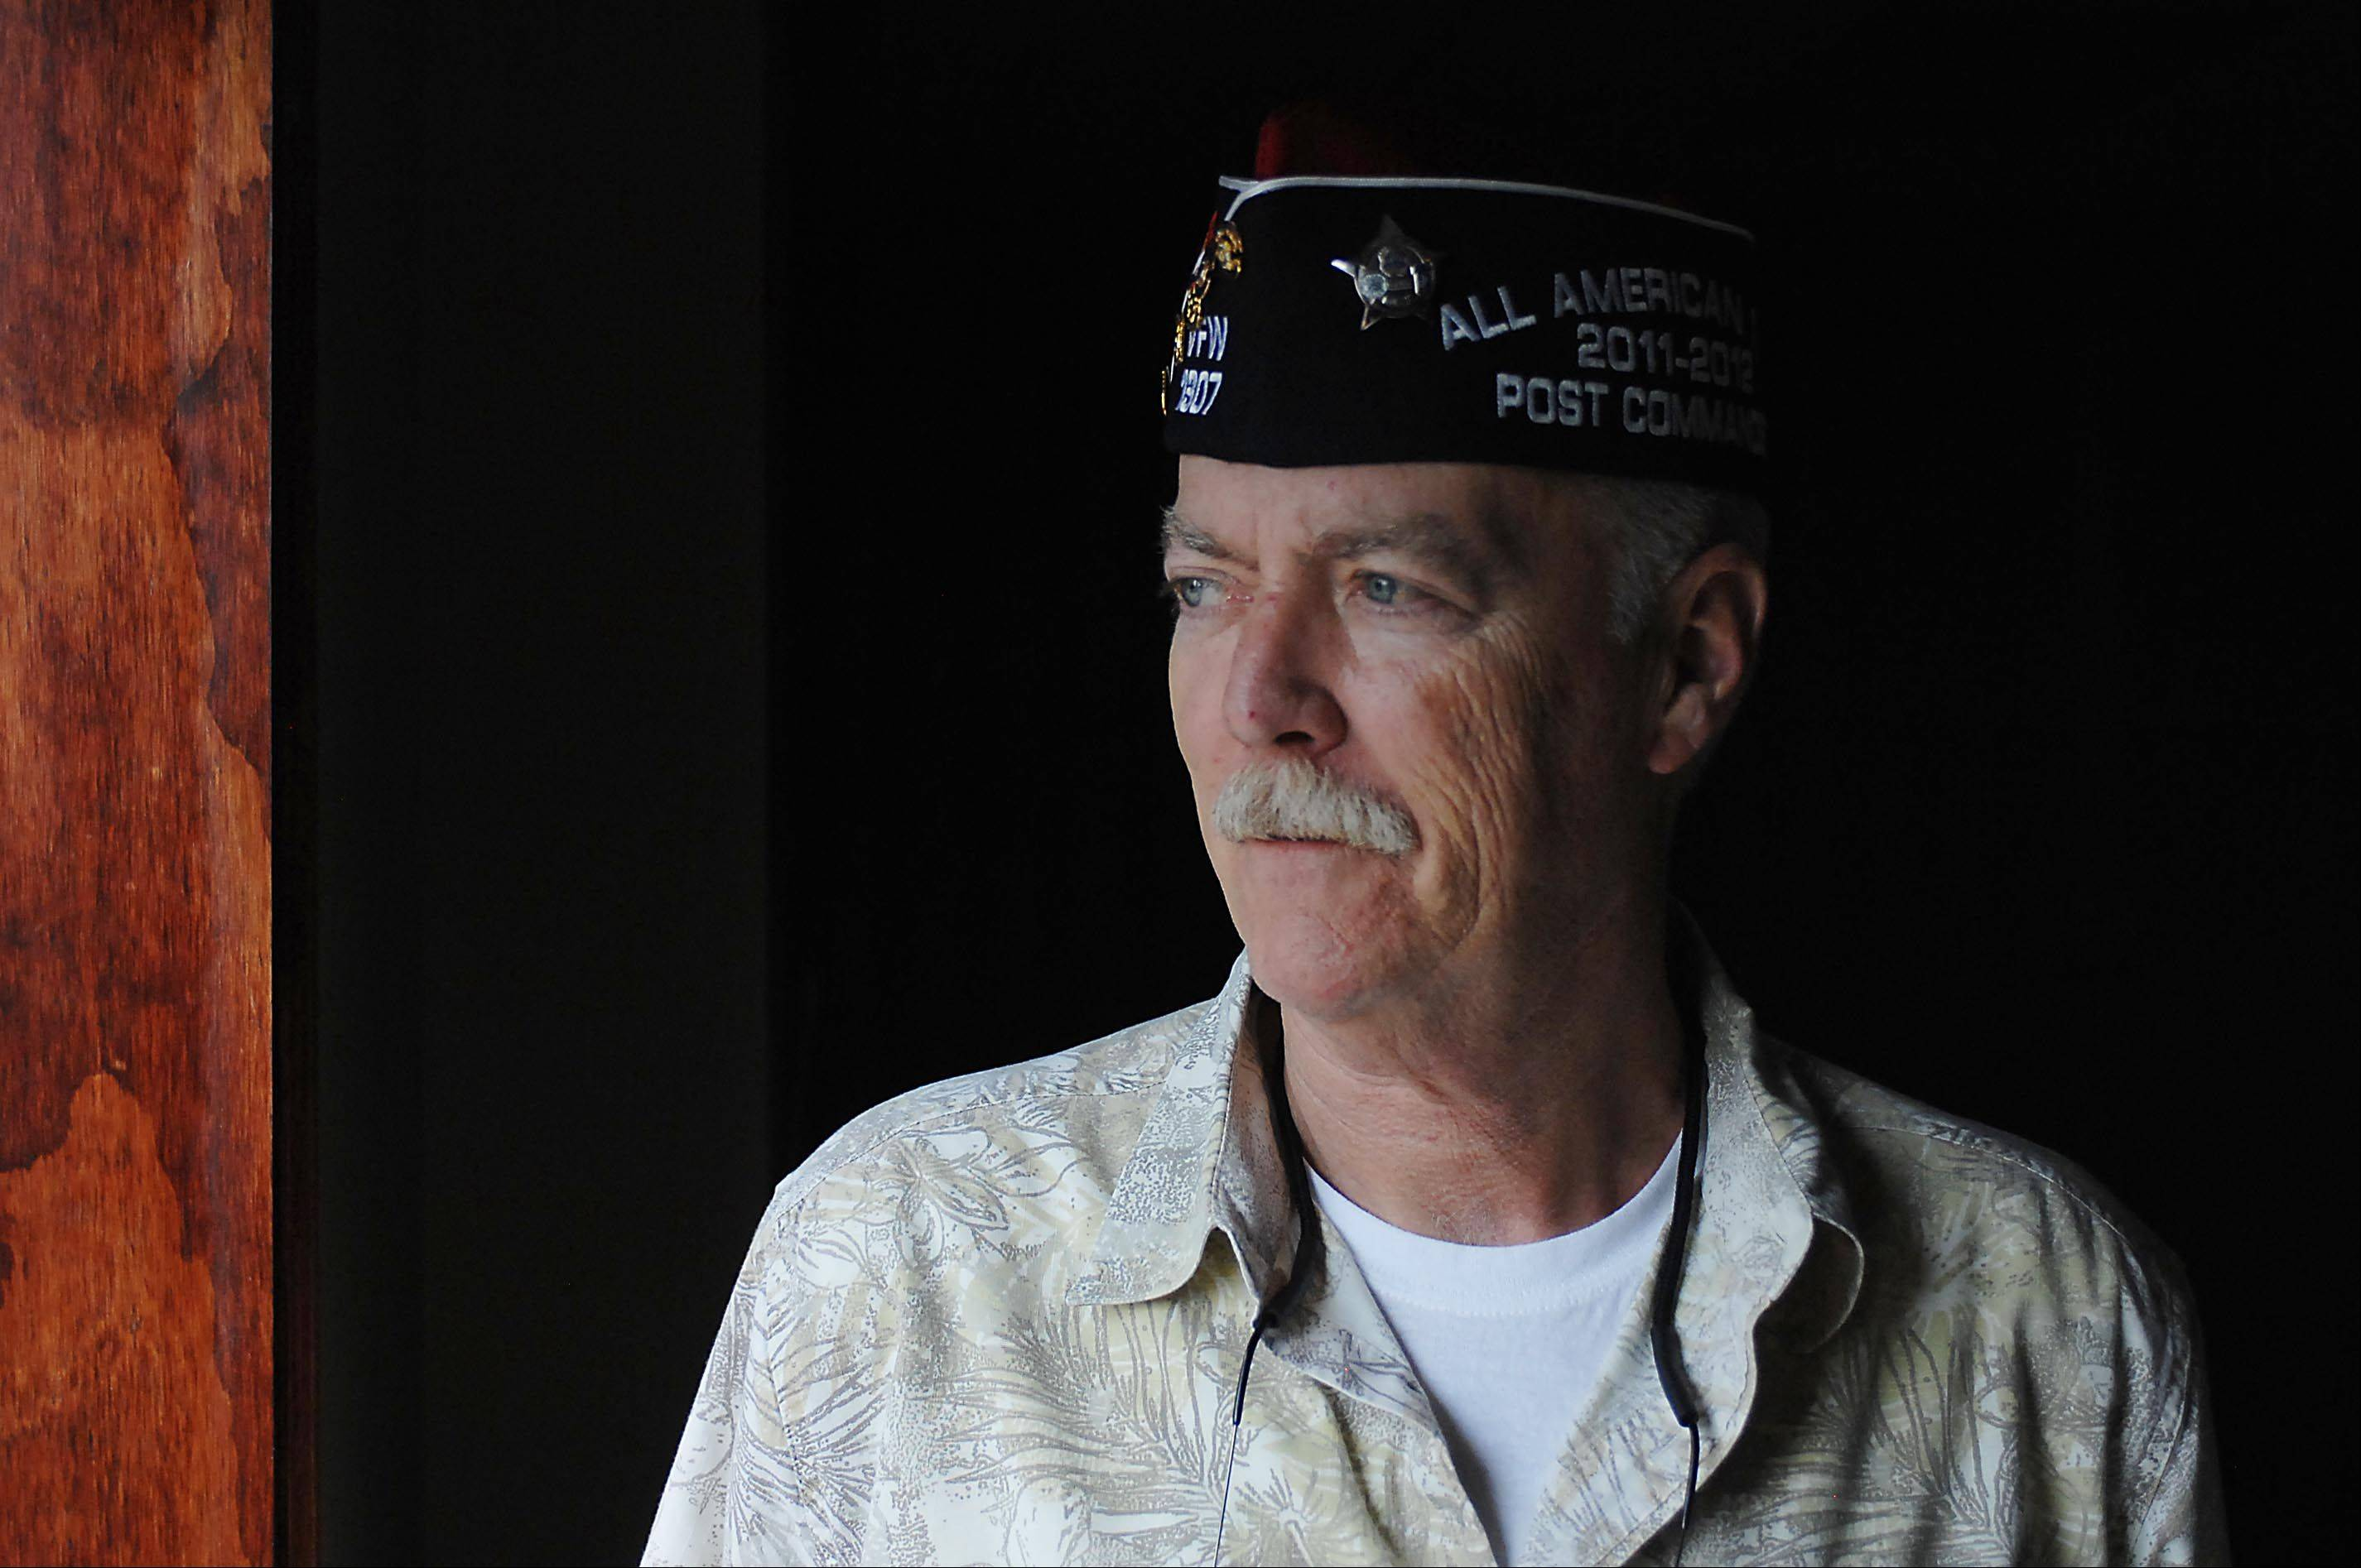 Doc Sheehan of the Elgin VFW Post 1307 was named August's veteran of the month by the Illinois Department of Veterans' Affairs. He attributes the honor to a great team working beside him while he was commander from 2009-2012.